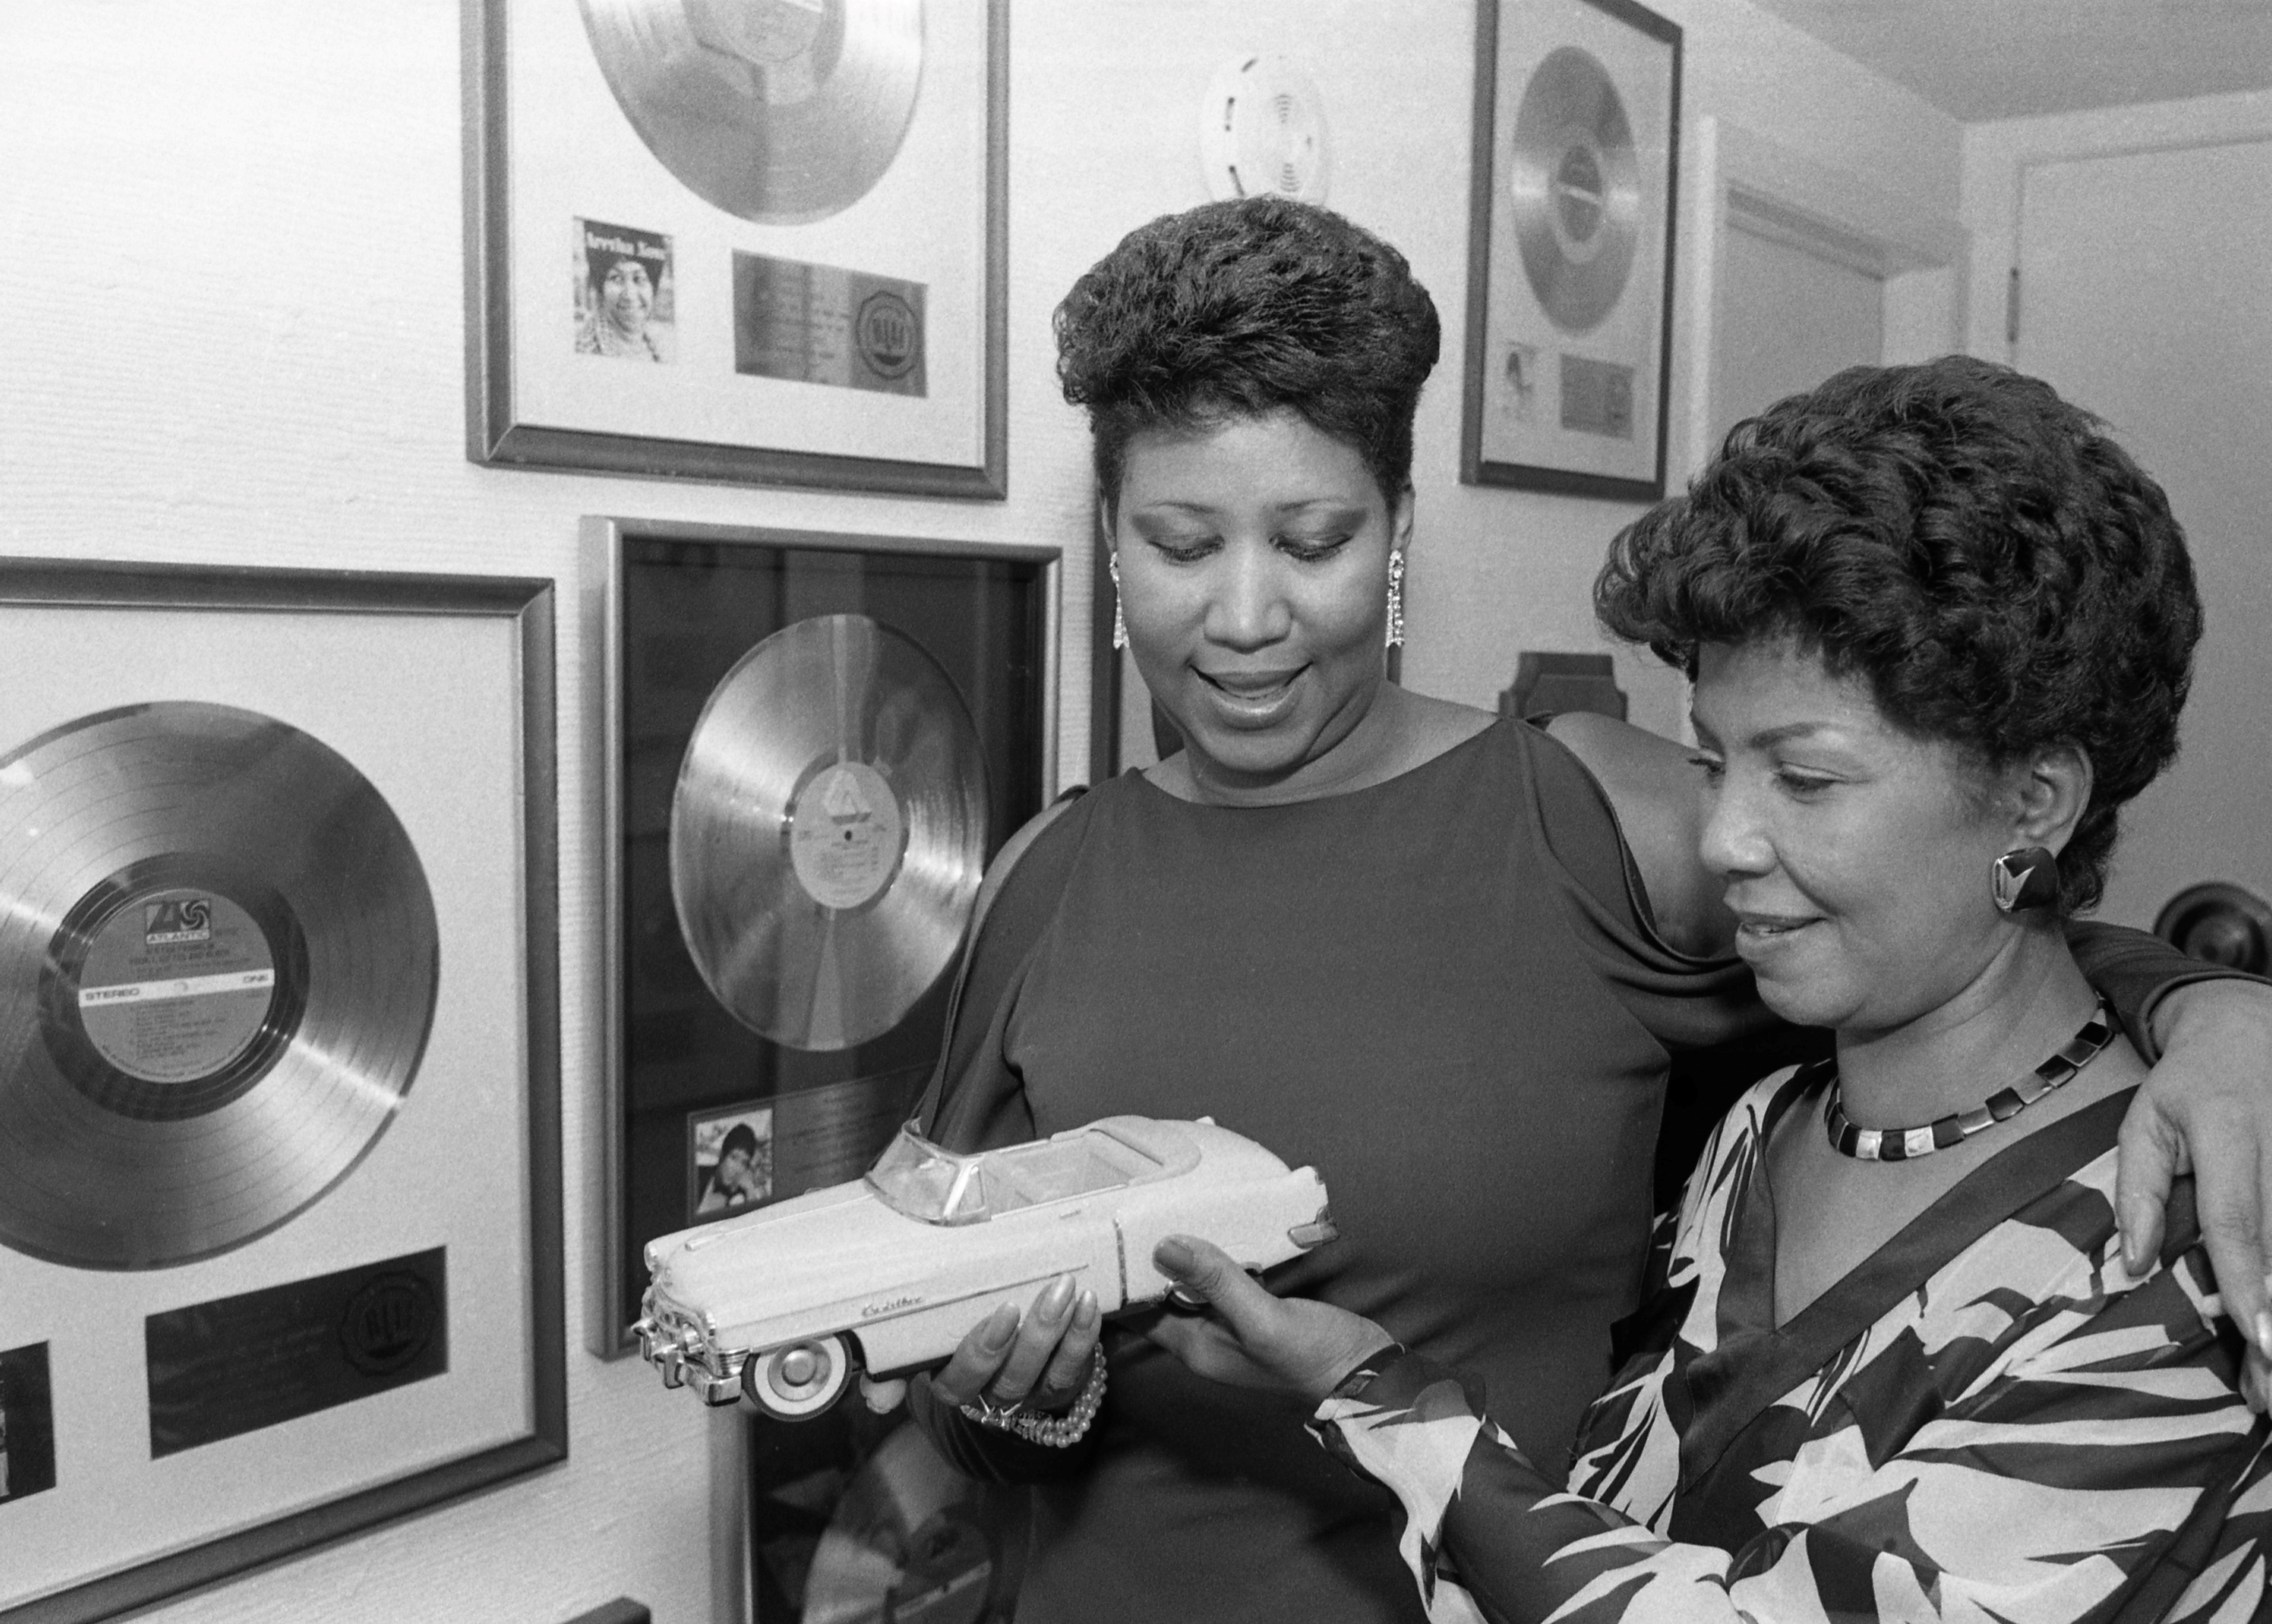 'The Queen Next Door' shows another side to Aretha Franklin